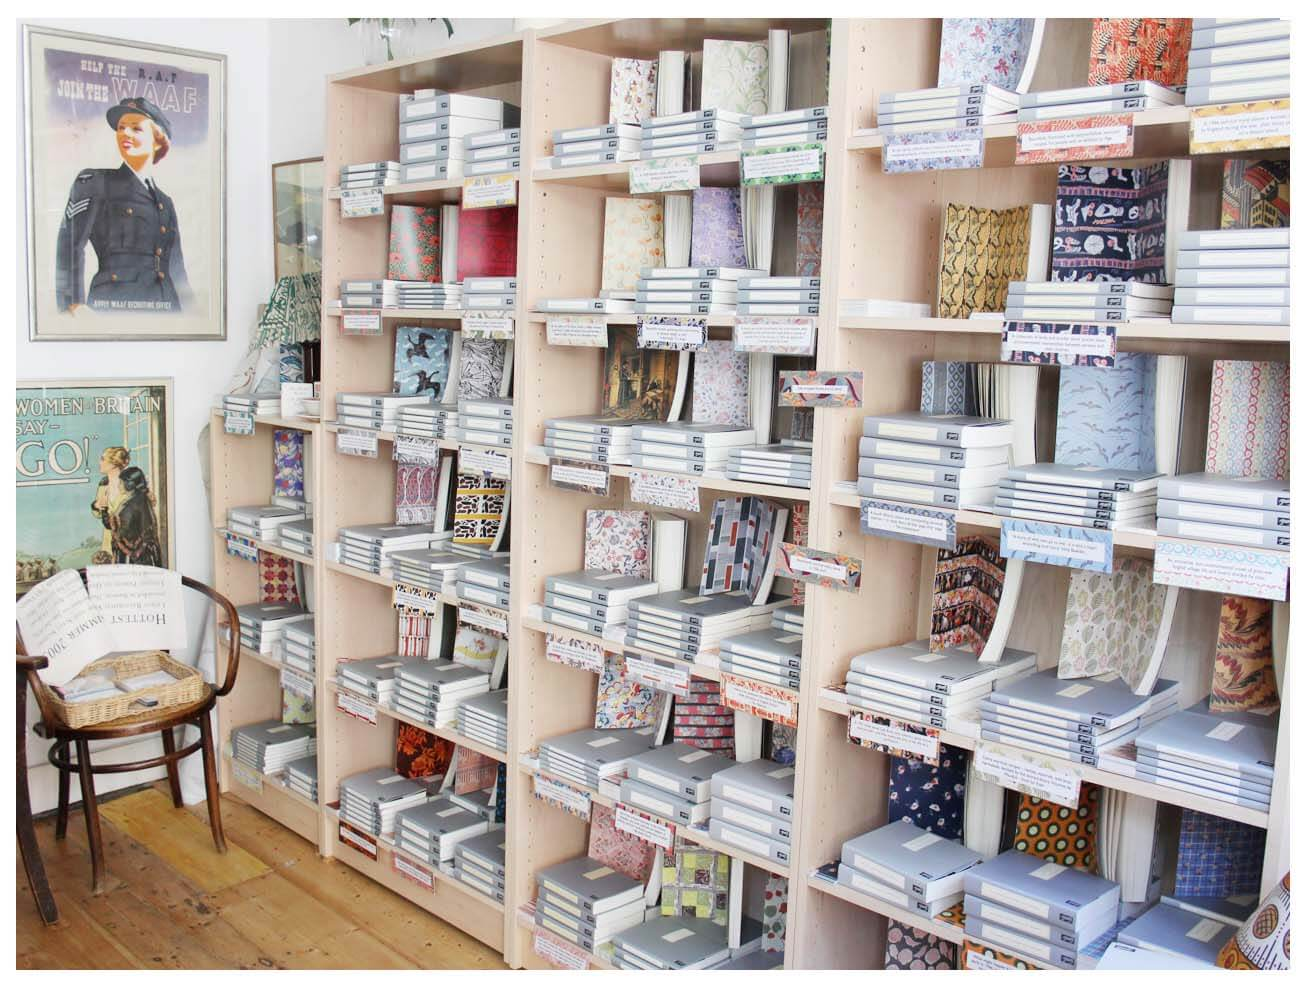 persephone-bookshop-london-thefabuloustimes